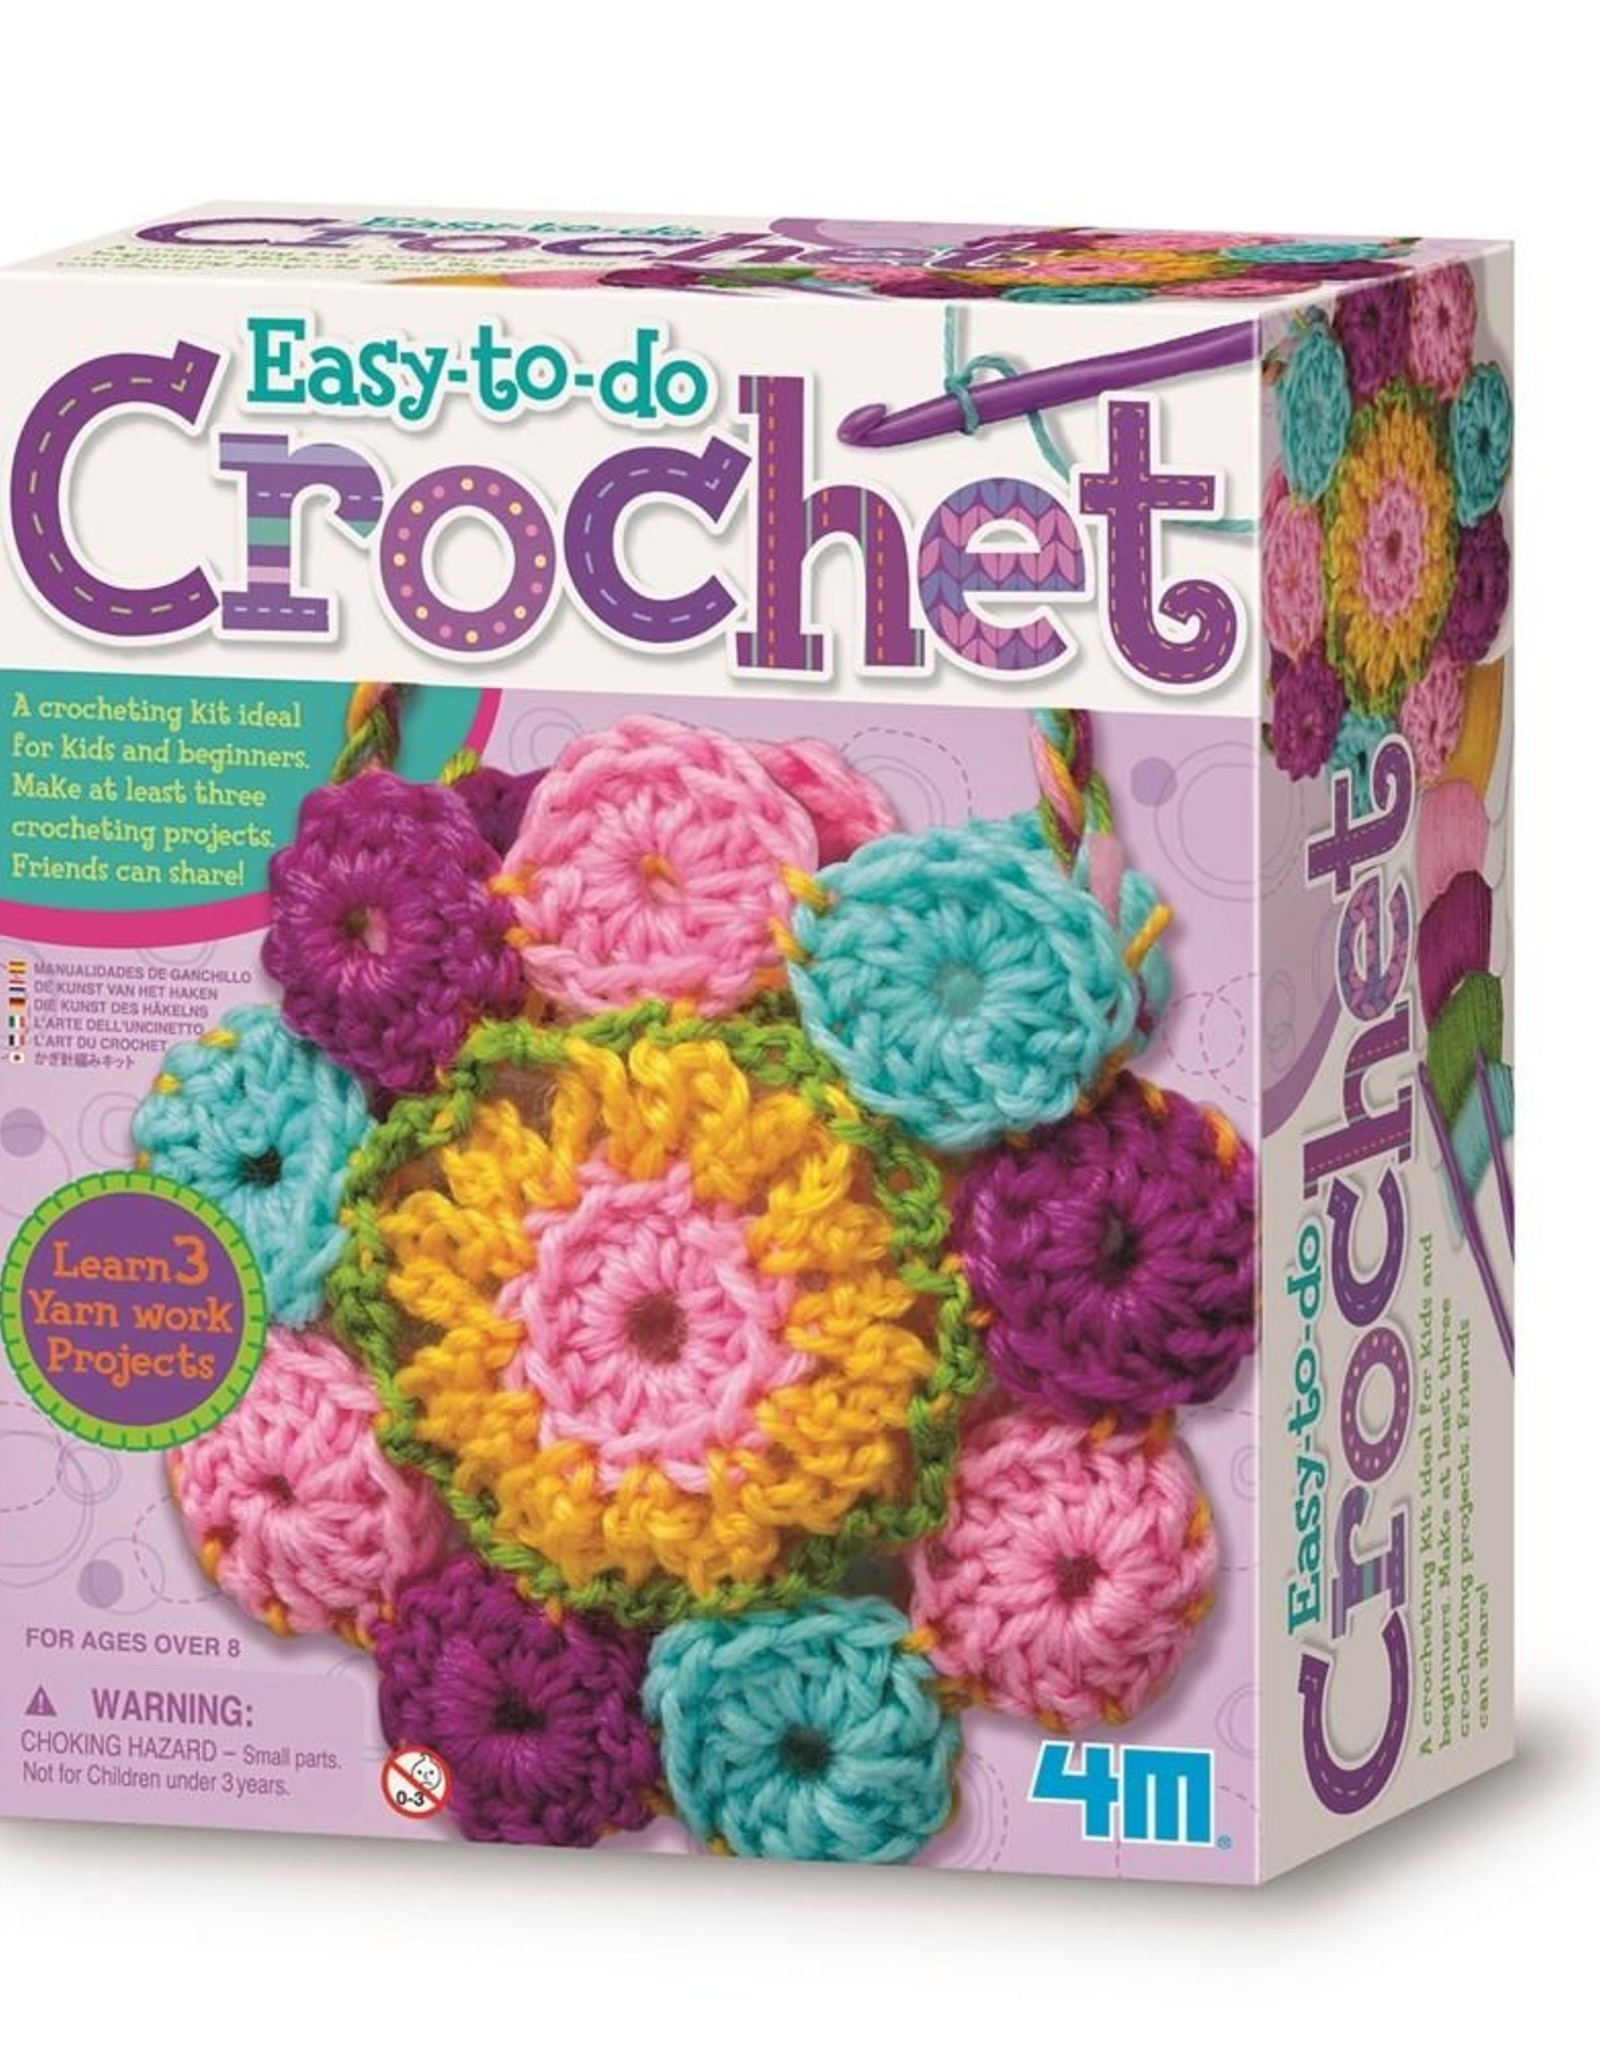 4M 4M Easy to do Crochet